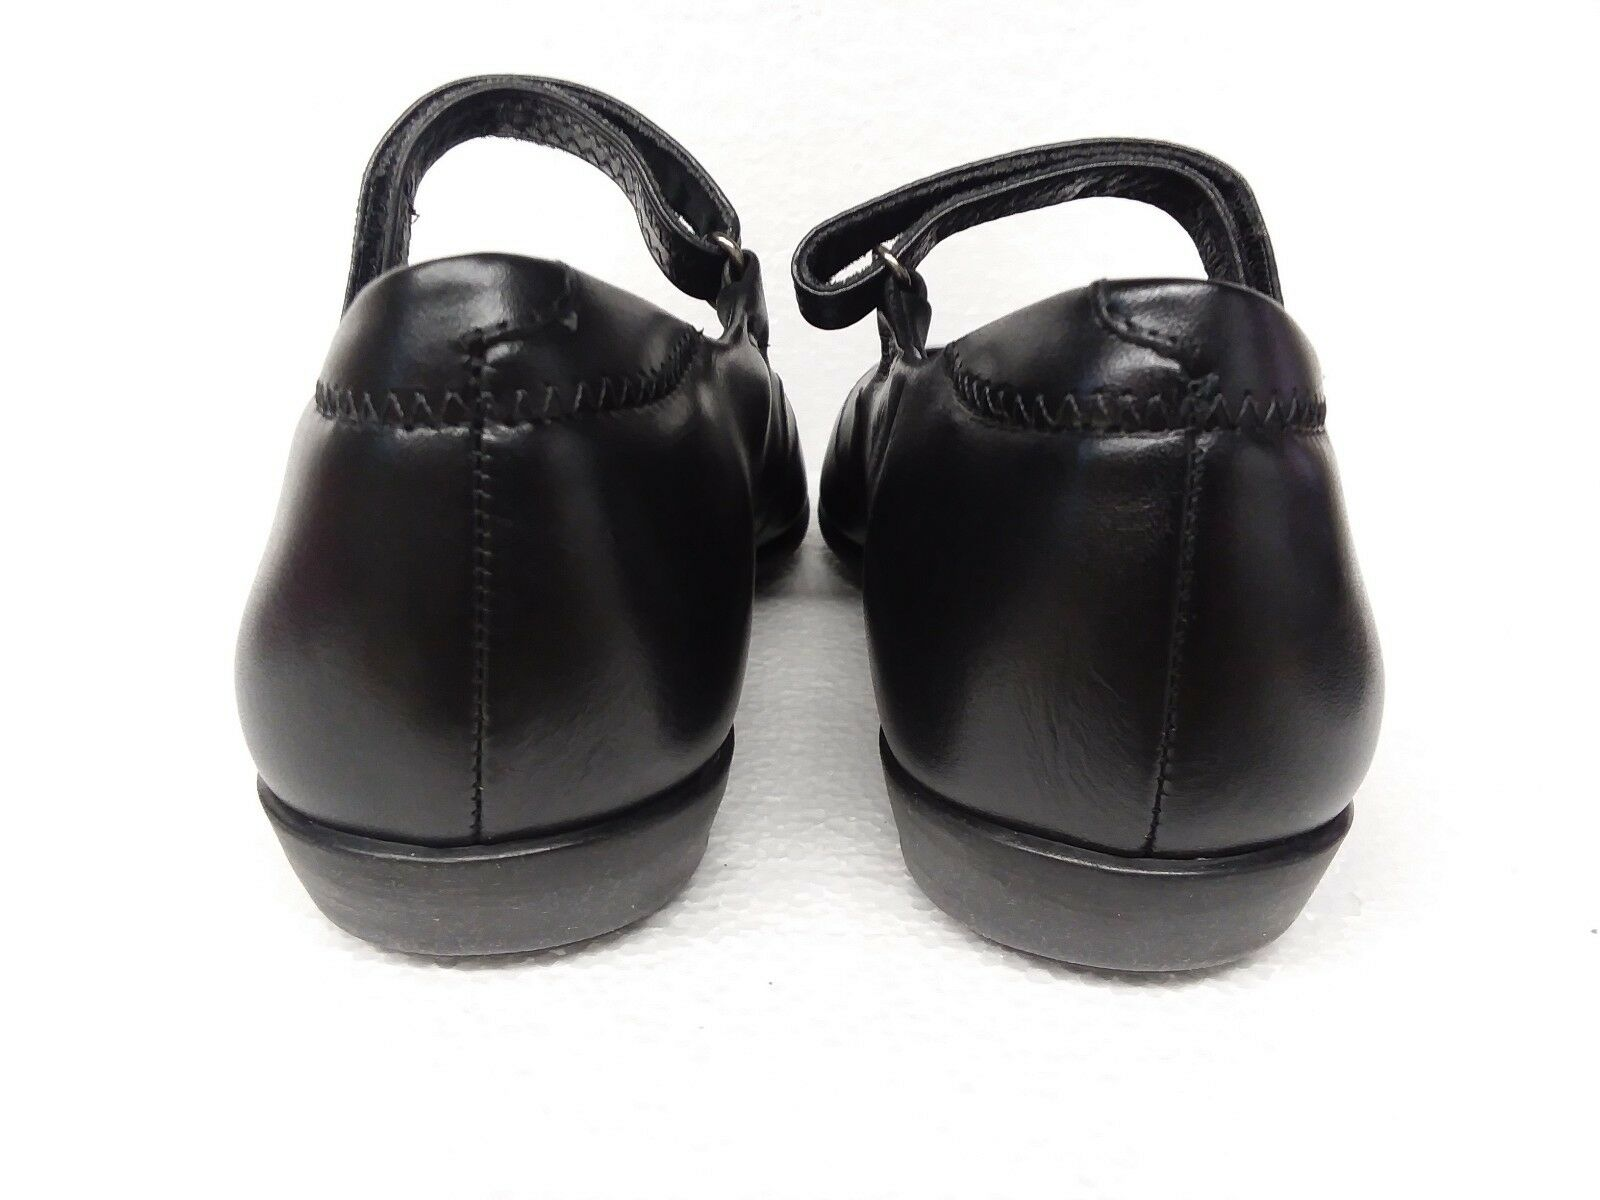 Walking Cradles Jane Jane Jane 2, nero LEATHER, US; 6.5W 38362a